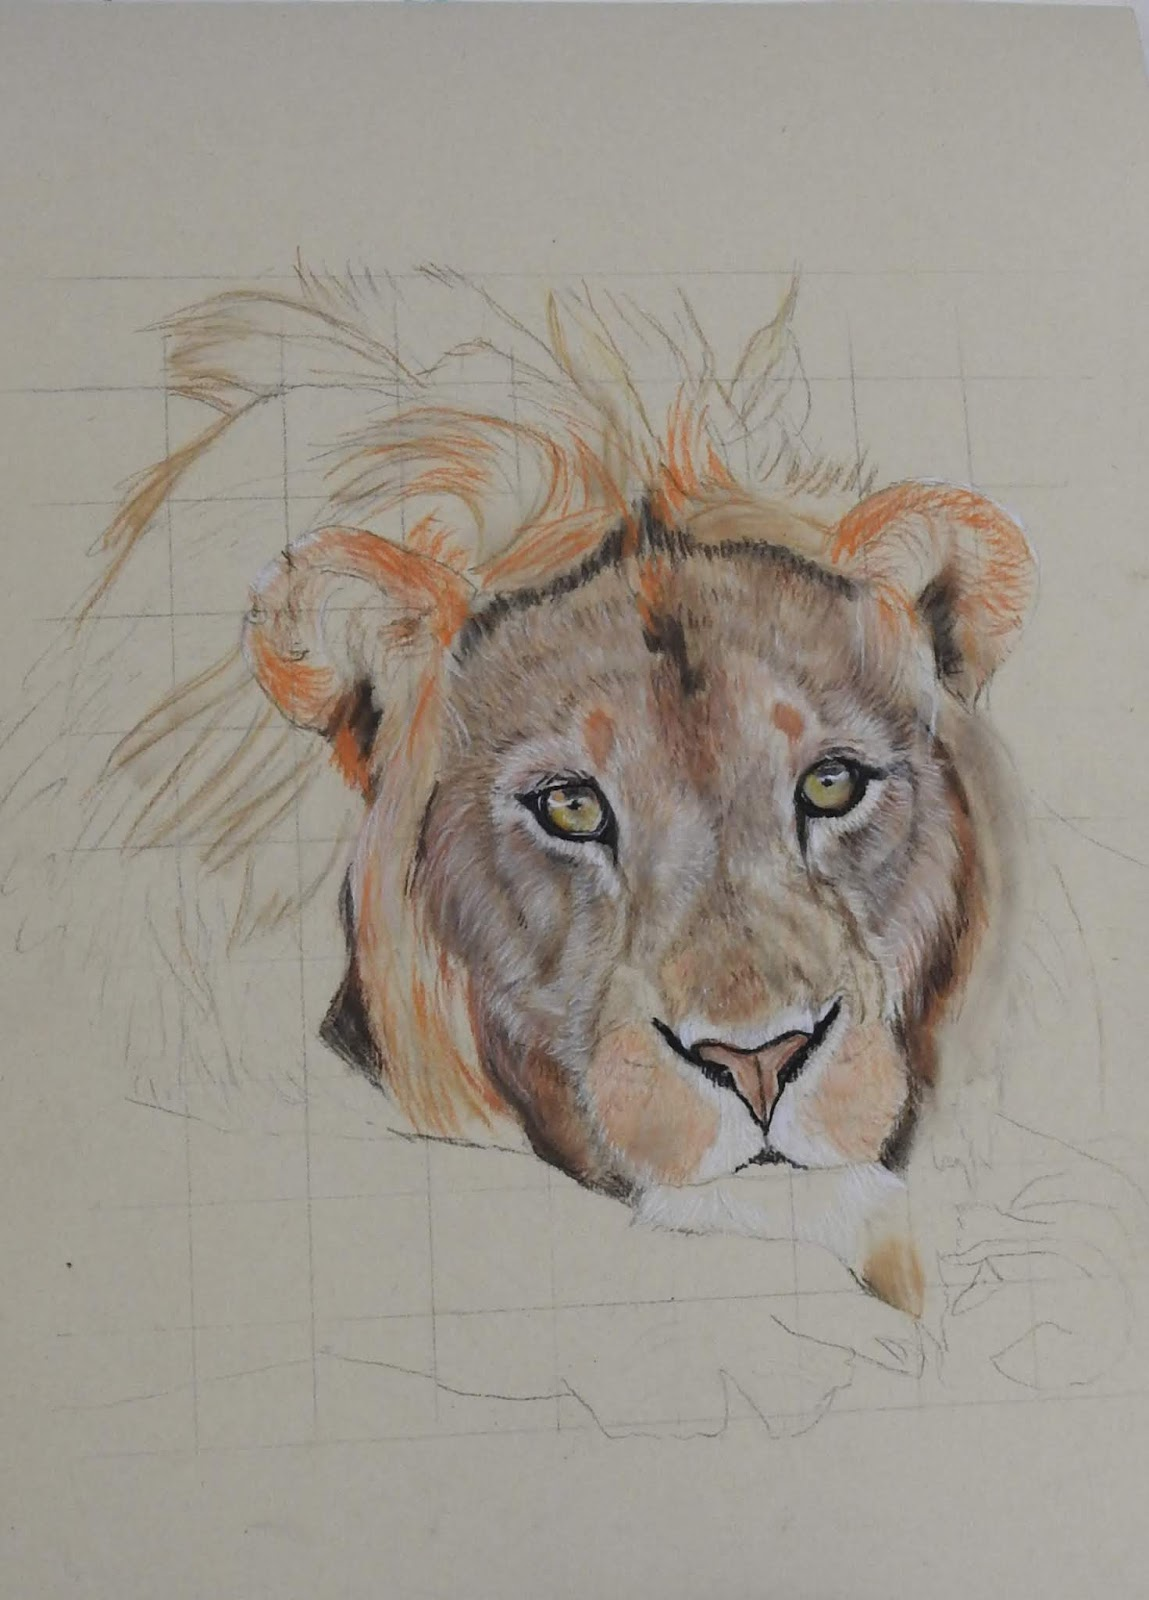 Fisher 400 Art Paper How To Draw Shear And Moment Diagrams For A Beam Pencilpix By Sue Clinker 22 08 Practice Piece Lion In Pastel On Check Out My Portrait Galleries